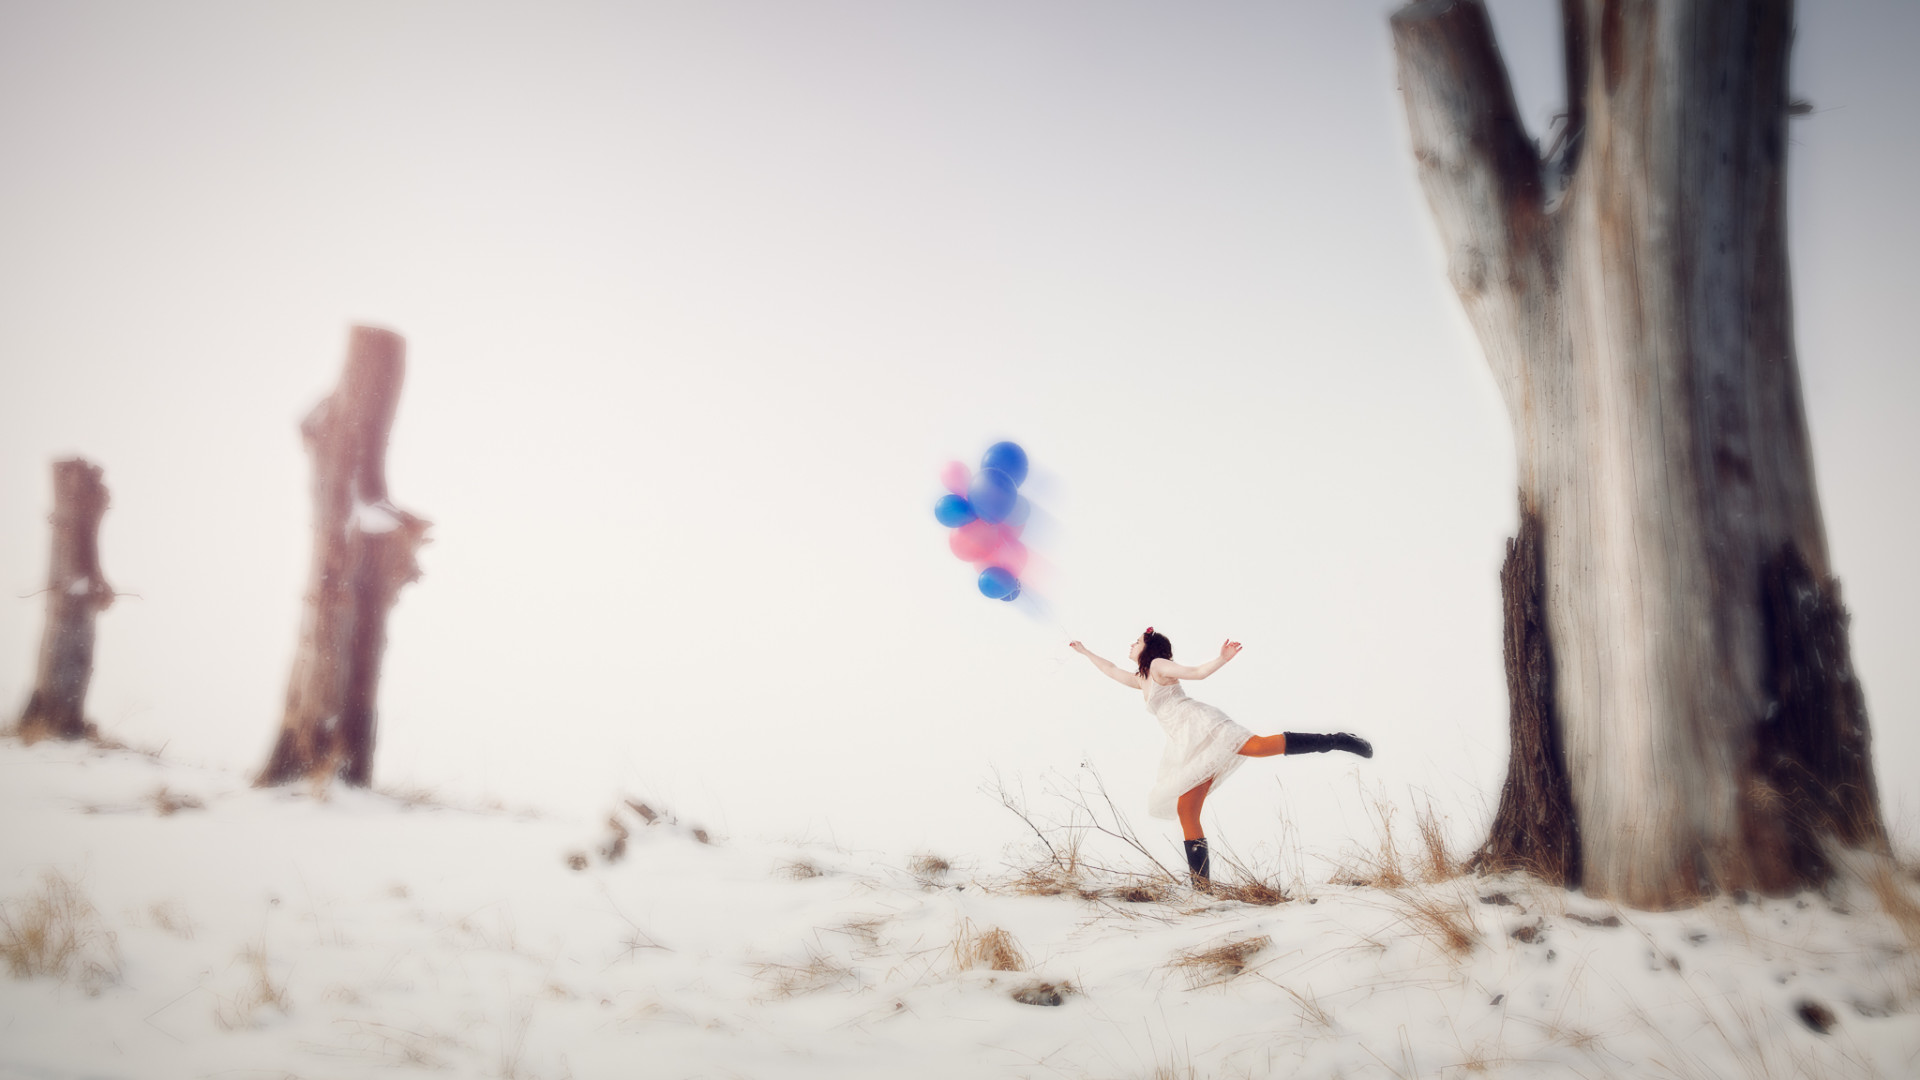 Wintery Fashion Dreamy Balloons And Surreal Miniature Rural Swedish Landscape